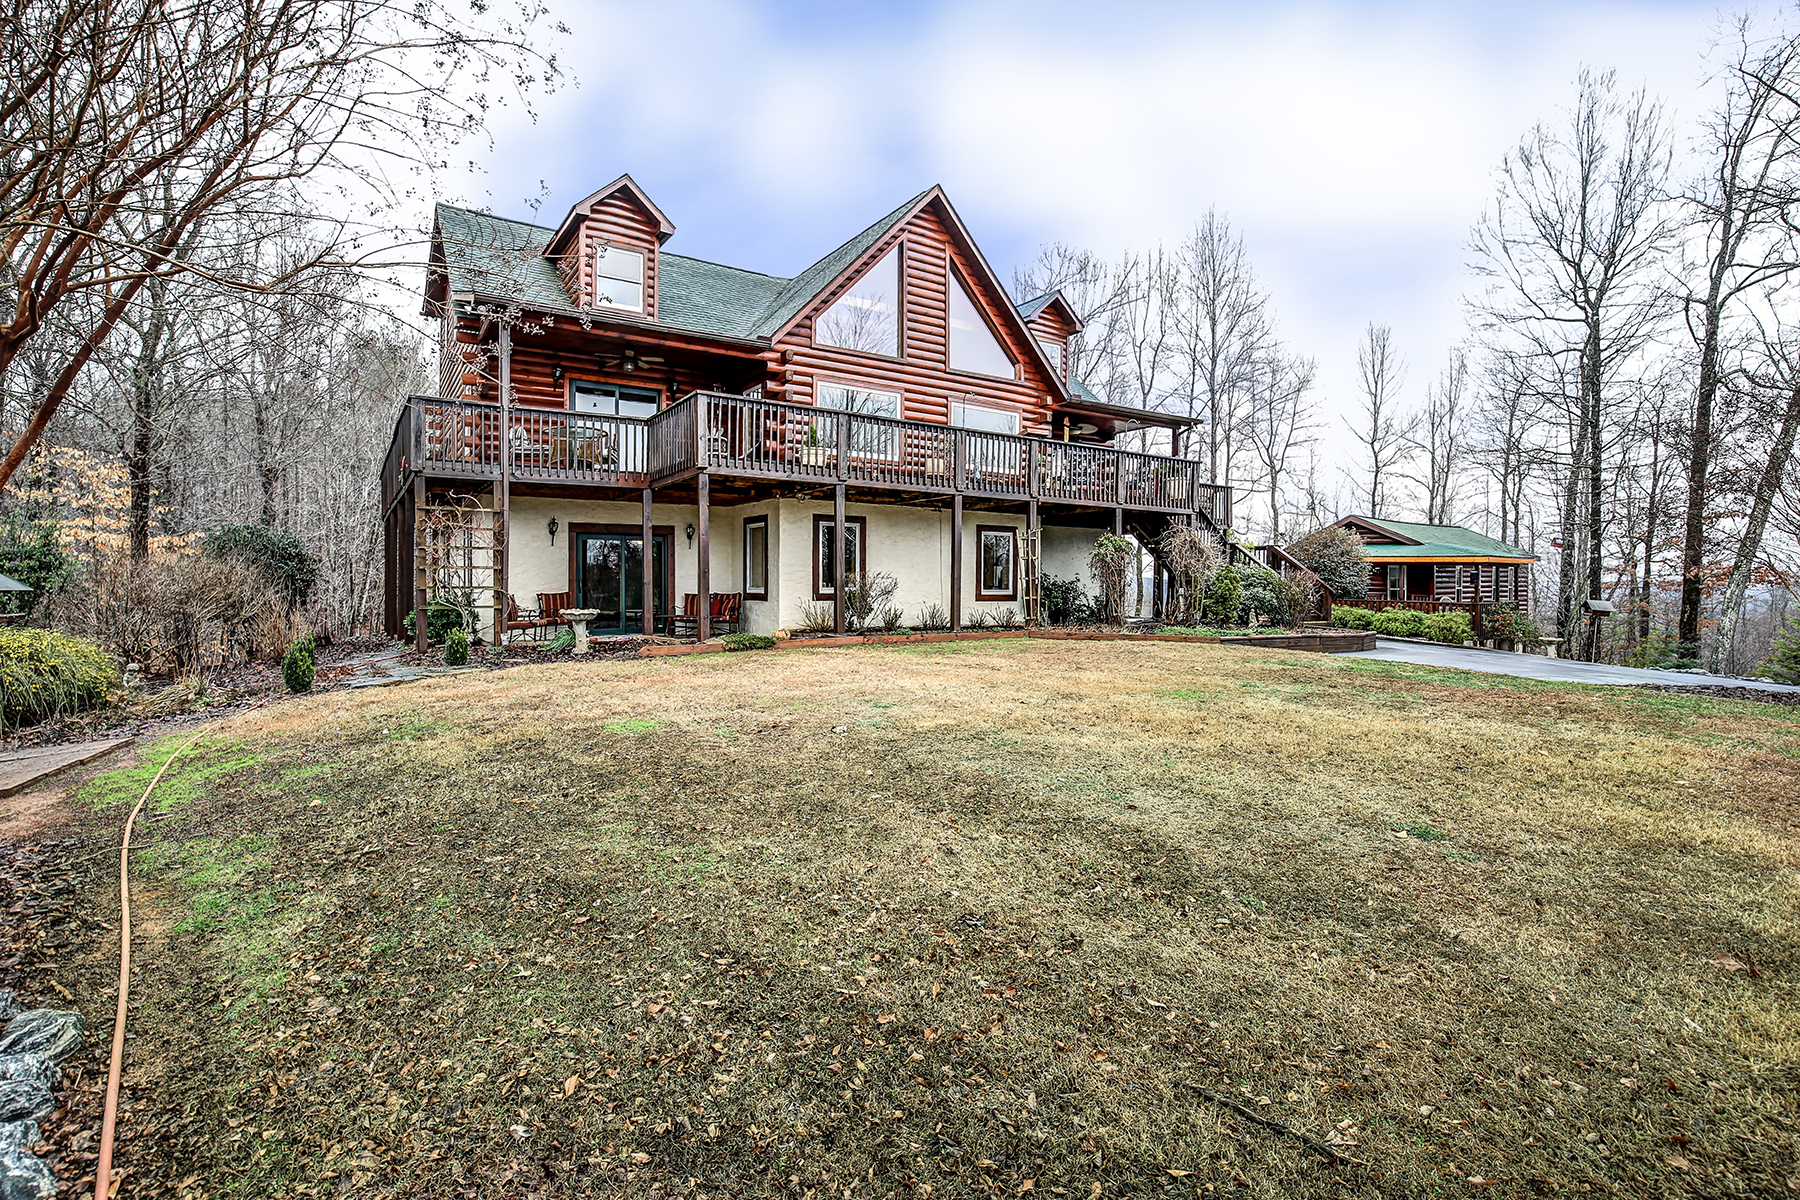 Single Family Home for Sale at GREEN RIVER HIGHLANDS 1132 Cross Ridge Dr Rutherfordton, North Carolina, 28139 United States